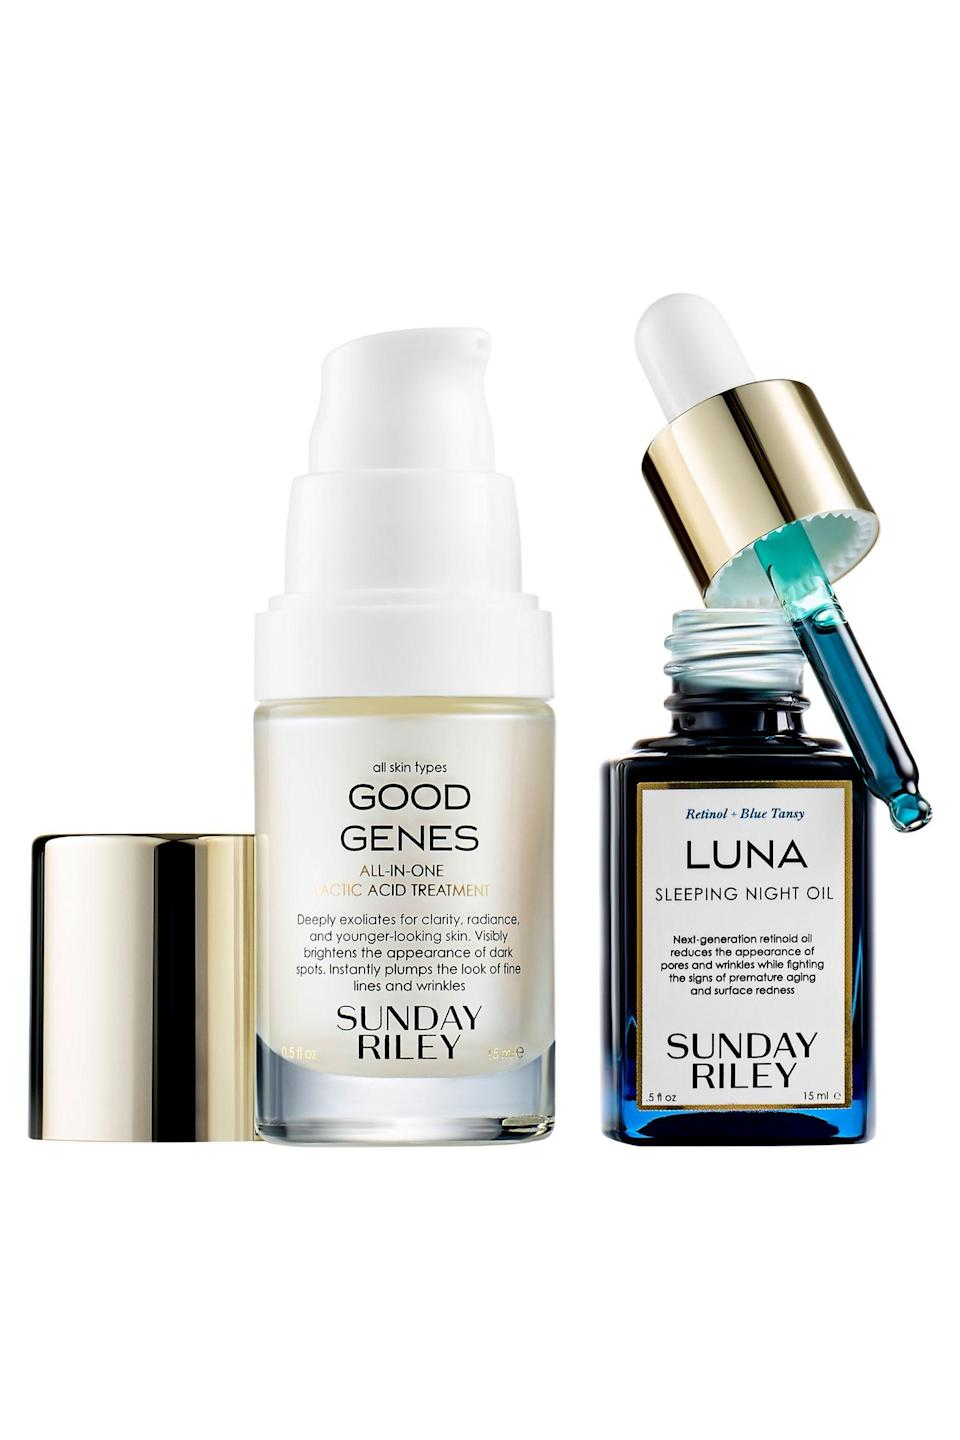 """<p><strong>Sunday Riley</strong></p><p>sephora.com</p><p><strong>$82.00</strong></p><p><a href=""""https://go.redirectingat.com?id=74968X1596630&url=https%3A%2F%2Fwww.sephora.com%2Fproduct%2Fpower-couple-lactic-acid-retinol-kit-P402718&sref=https%3A%2F%2Fwww.elle.com%2Fbeauty%2Fmakeup-skin-care%2Fg33433197%2Fbest-skin-care-sets%2F"""" rel=""""nofollow noopener"""" target=""""_blank"""" data-ylk=""""slk:Shop Now"""" class=""""link rapid-noclick-resp"""">Shop Now</a></p><p>Introducing retinol into your skincare routine isn't as easy as it seems. But this Sunday Riley duo, featuring the holy grail Good Genes treatment, is gentle yet powerful enough to deliver some serious results.</p>"""